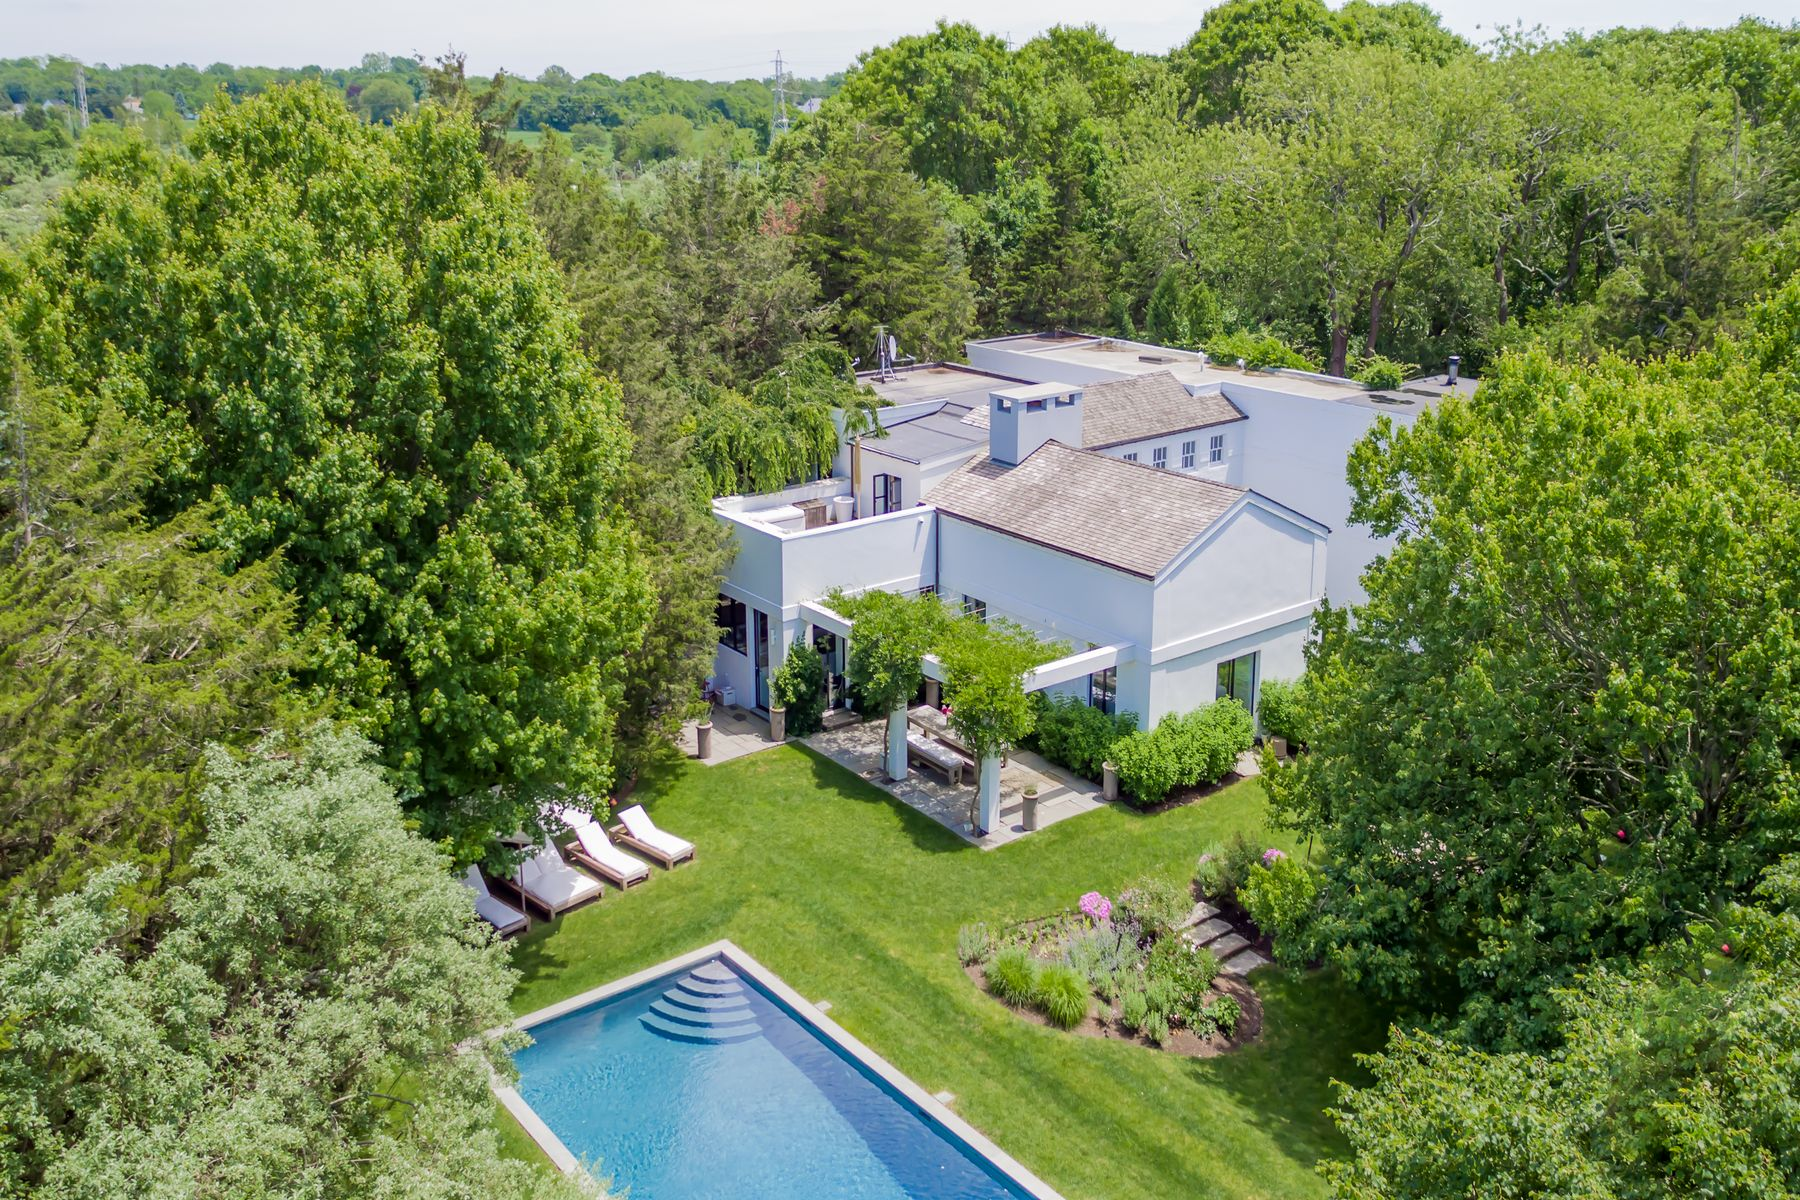 Single Family Home for Active at Sophisticated And Private Stunner 154 Windmill Lane Amagansett, New York 11930 United States